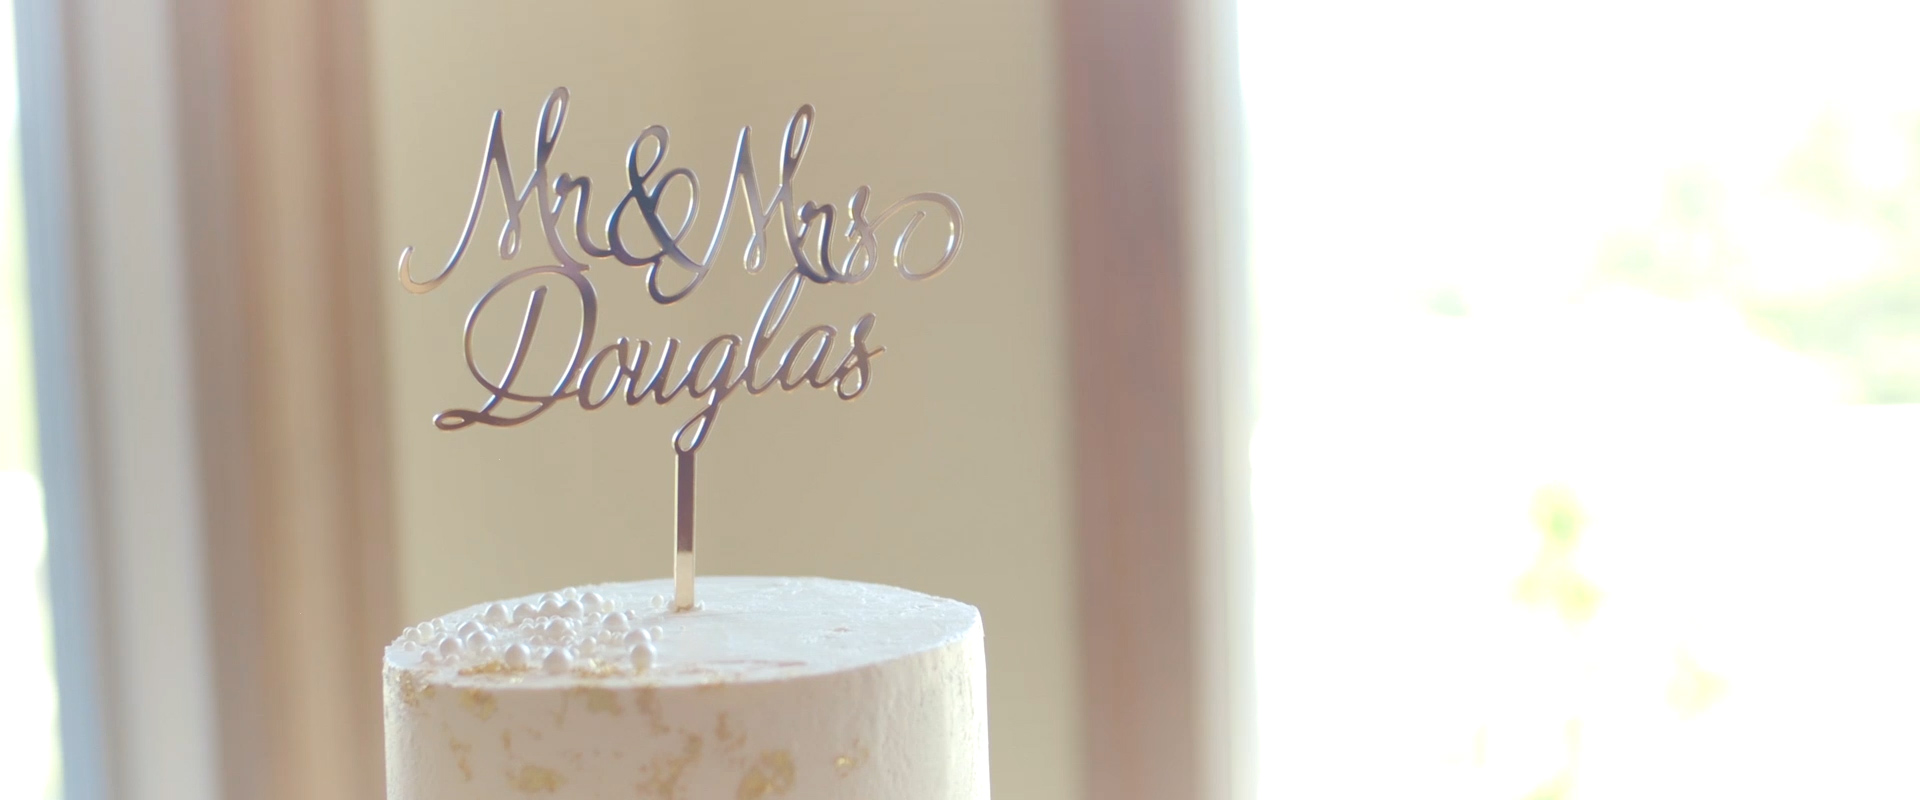 An image of a cake topper at a wedding reception; taken from a Toronto Wedding Video